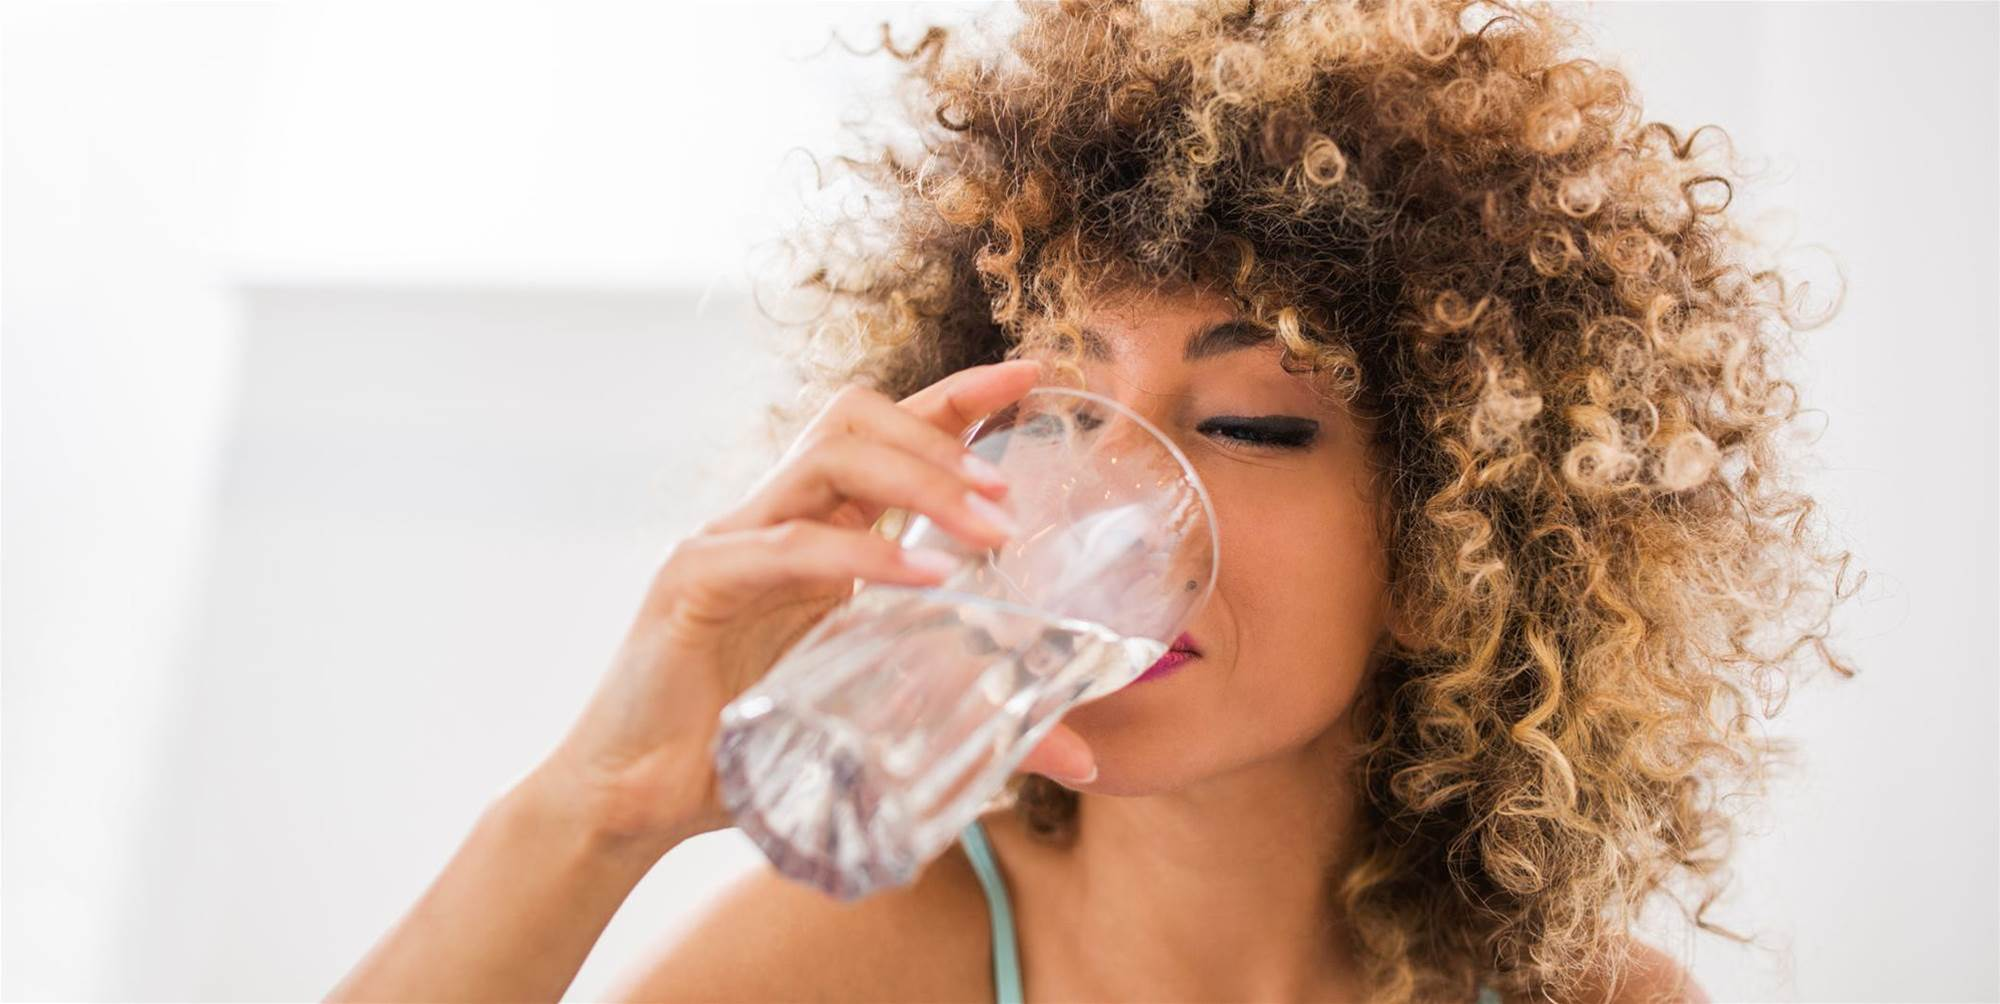 10 Unexpected Reasons Why You're Thirsty All the Time